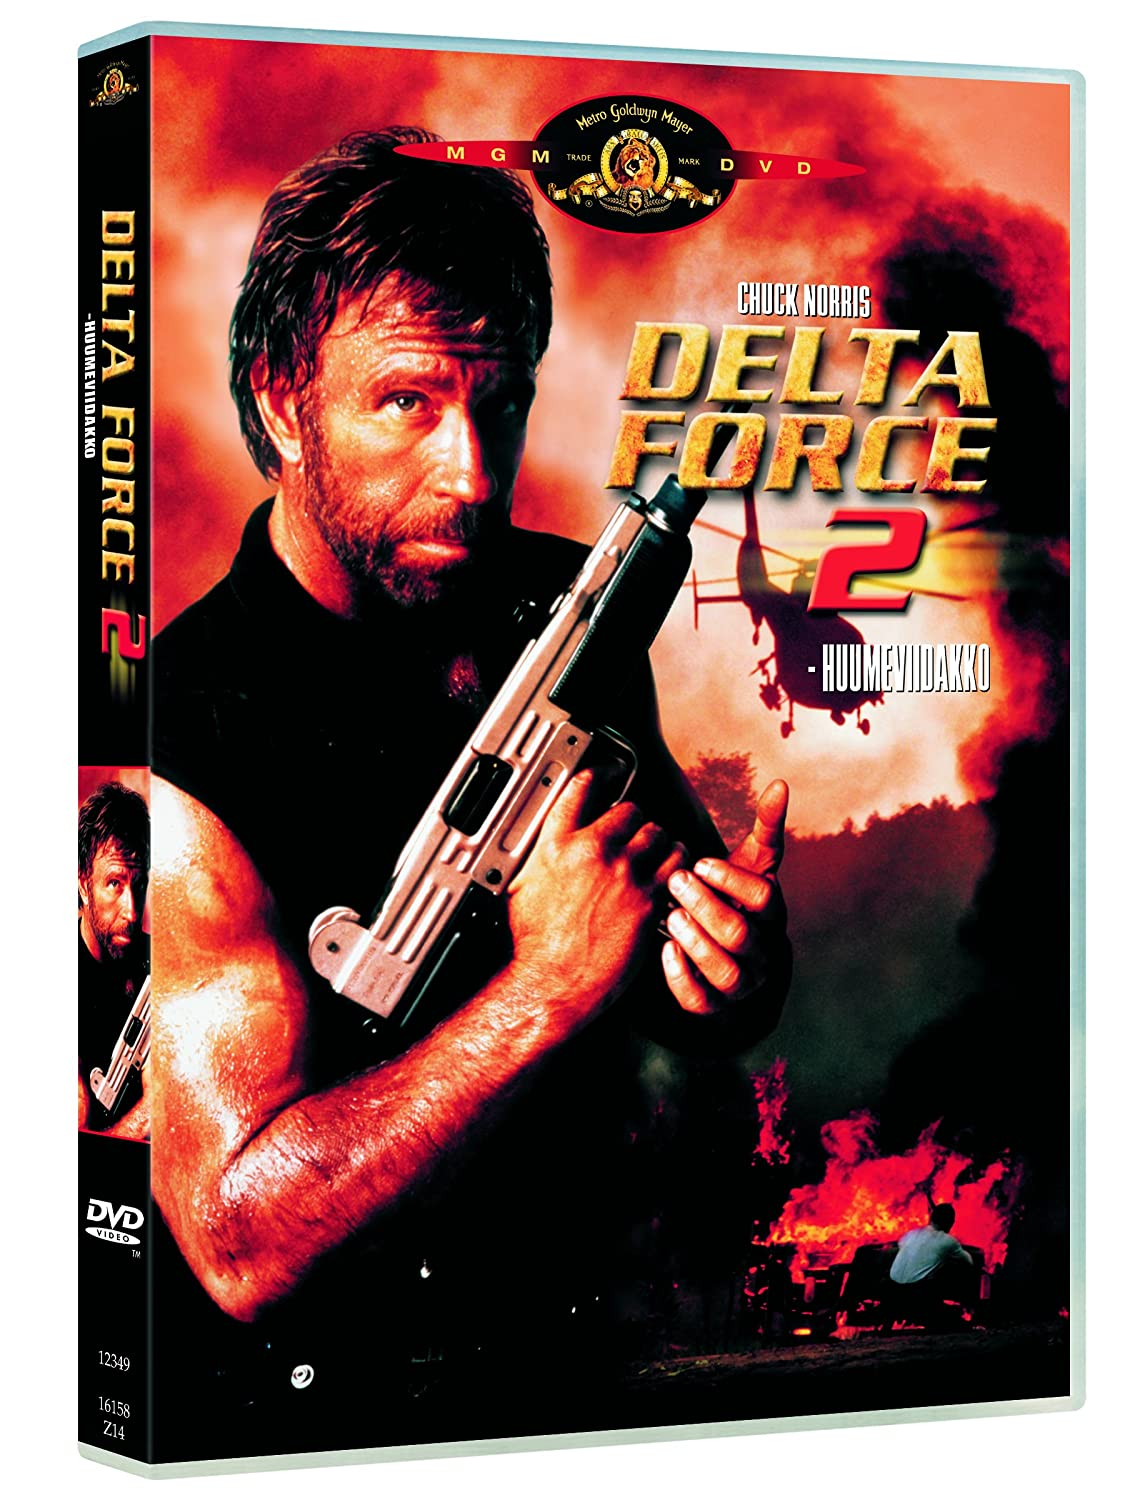 Delta Force 2 [DVD]: Amazon.es: Billy Drago, Chuck Norris ...